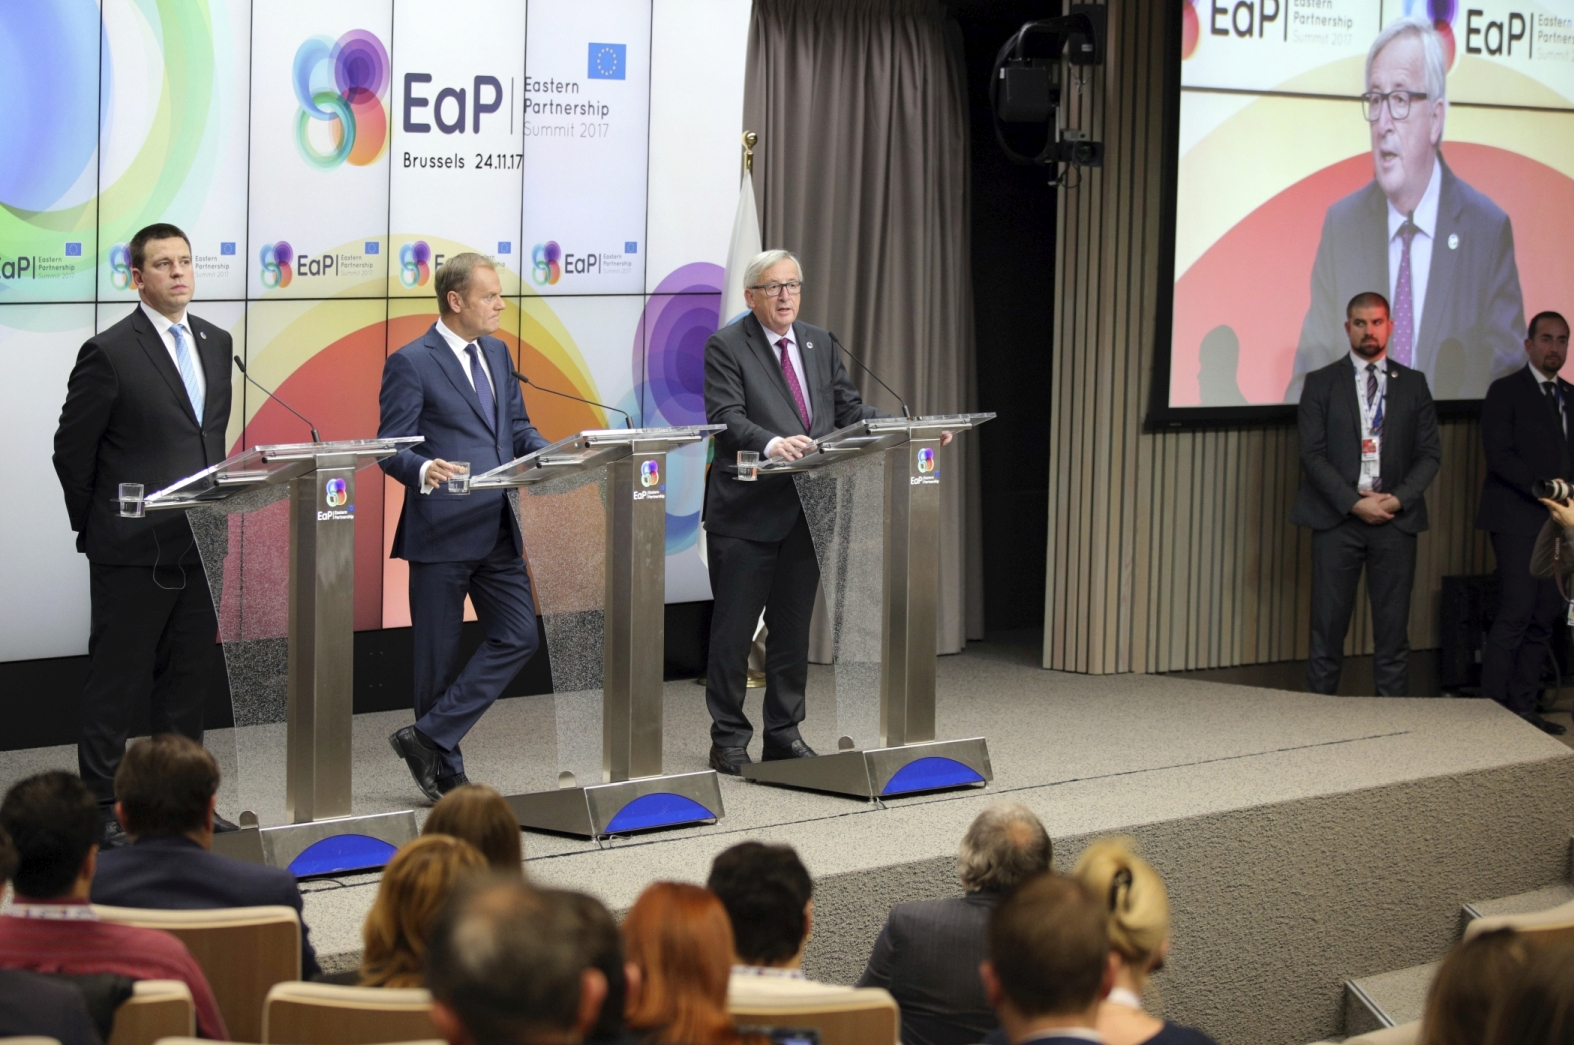 Image for To Sleep, Perchance to Reform: The Continued Relevance of the EU's Eastern Partnership